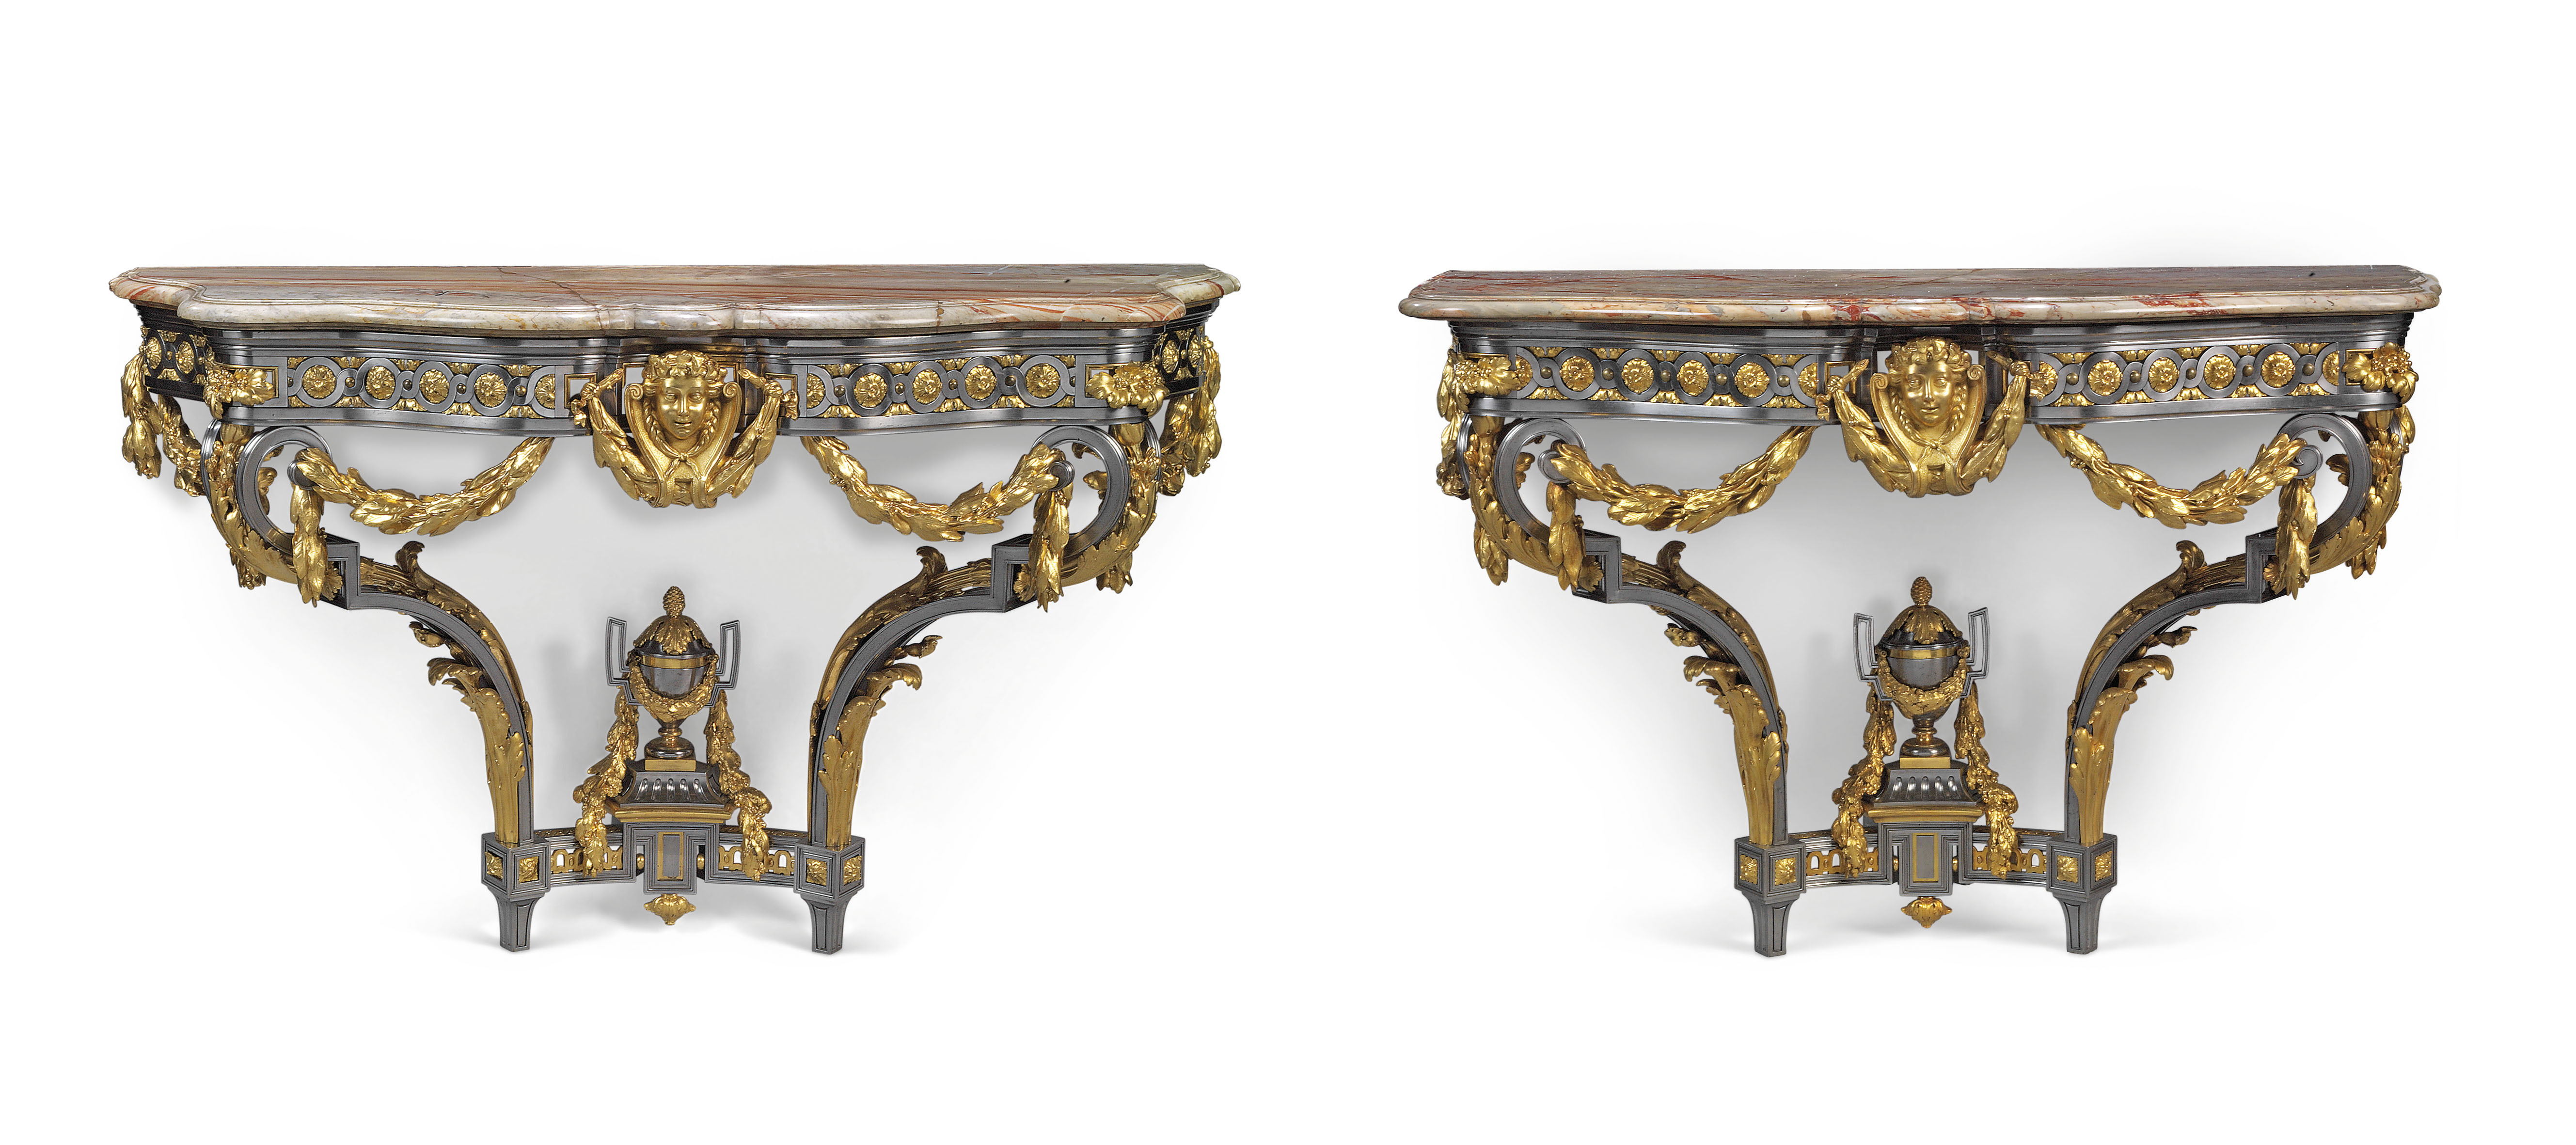 Classic Table Shapes A Z Of Furniture Terminology To Know When Buying At Auction